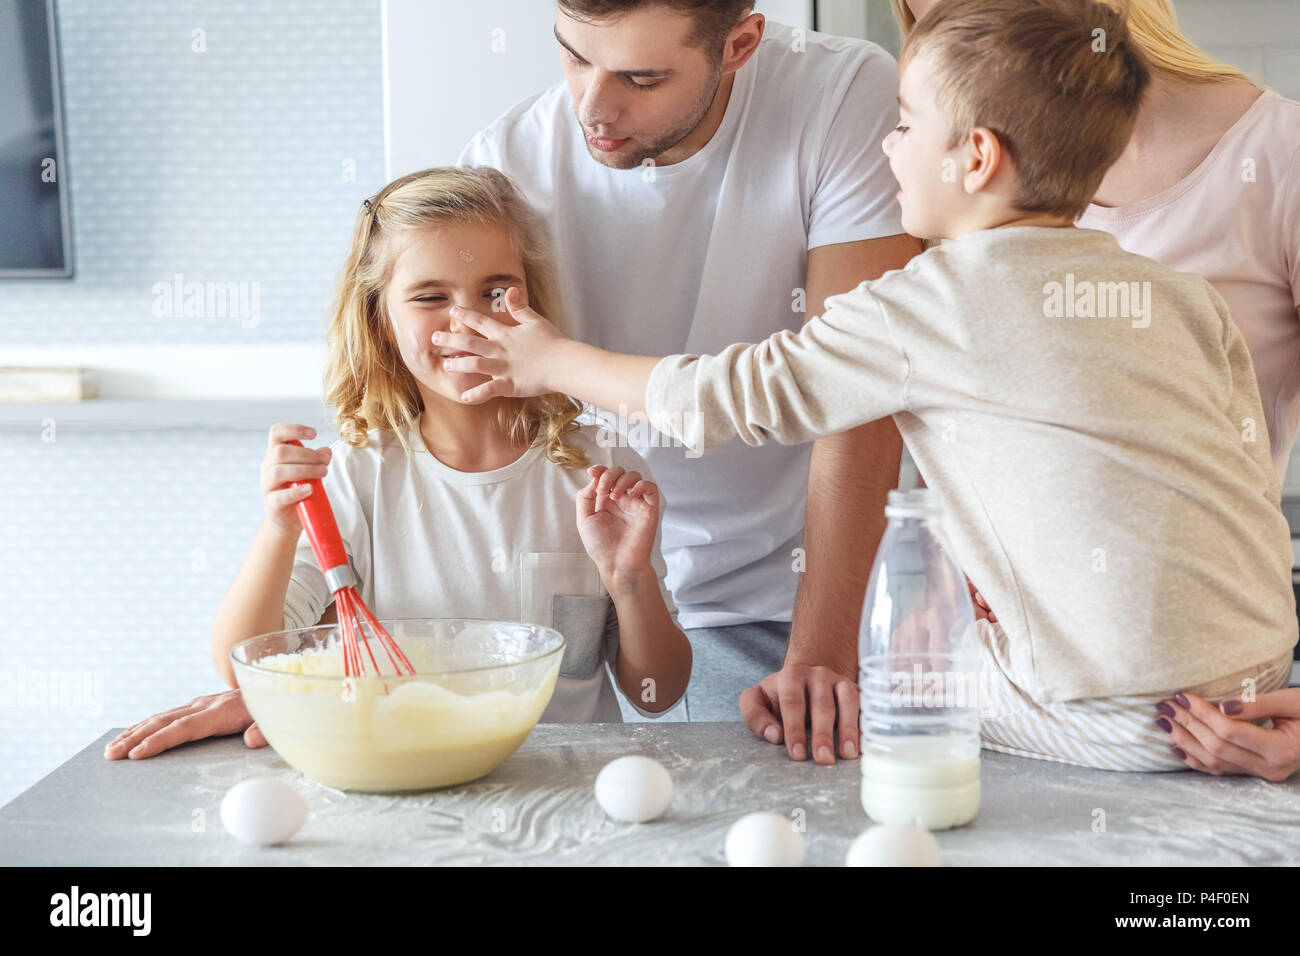 young family playing while cooking breakfast together - Stock Image